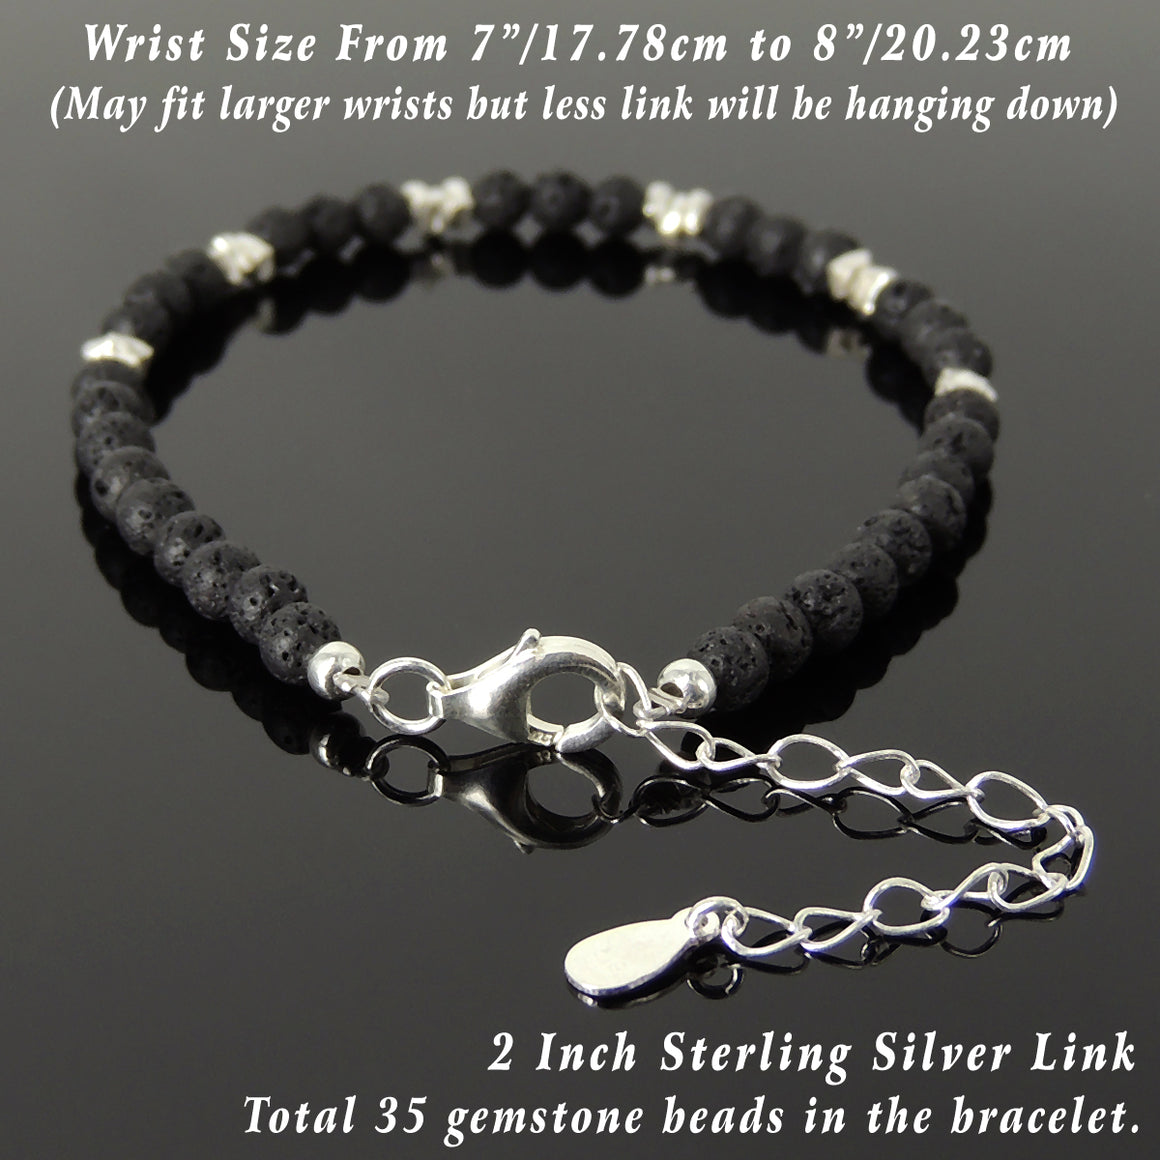 4mm Lava Rock Healing Stone Bracelet with S925 Sterling Silver Nugget Beads, Chain, & Clasp - Handmade by Gem & Silver BR1266